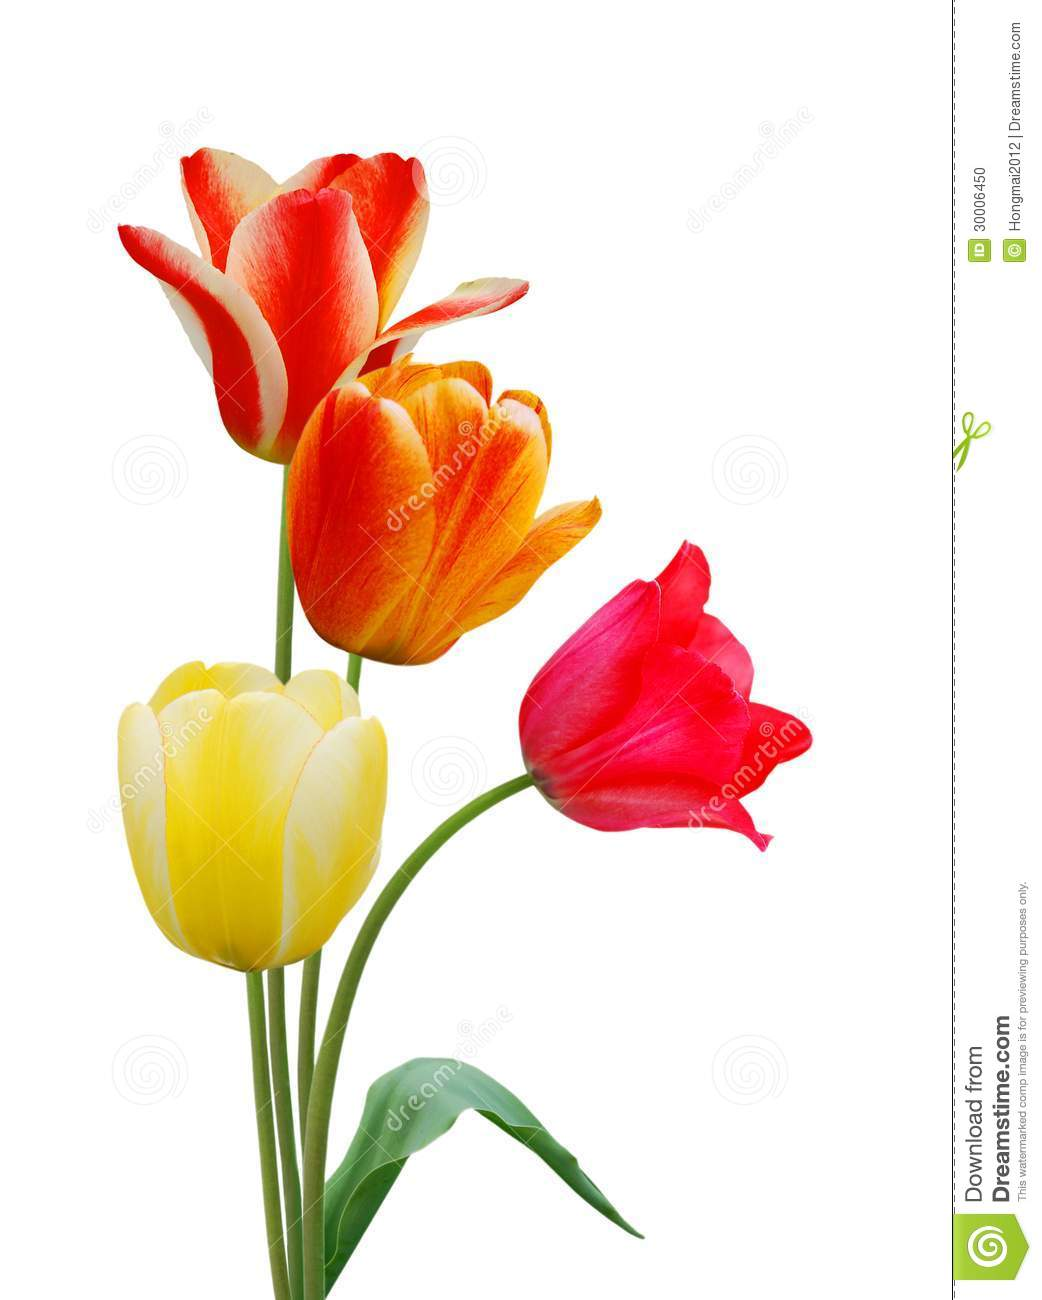 colorful tulip flowers - photo #43